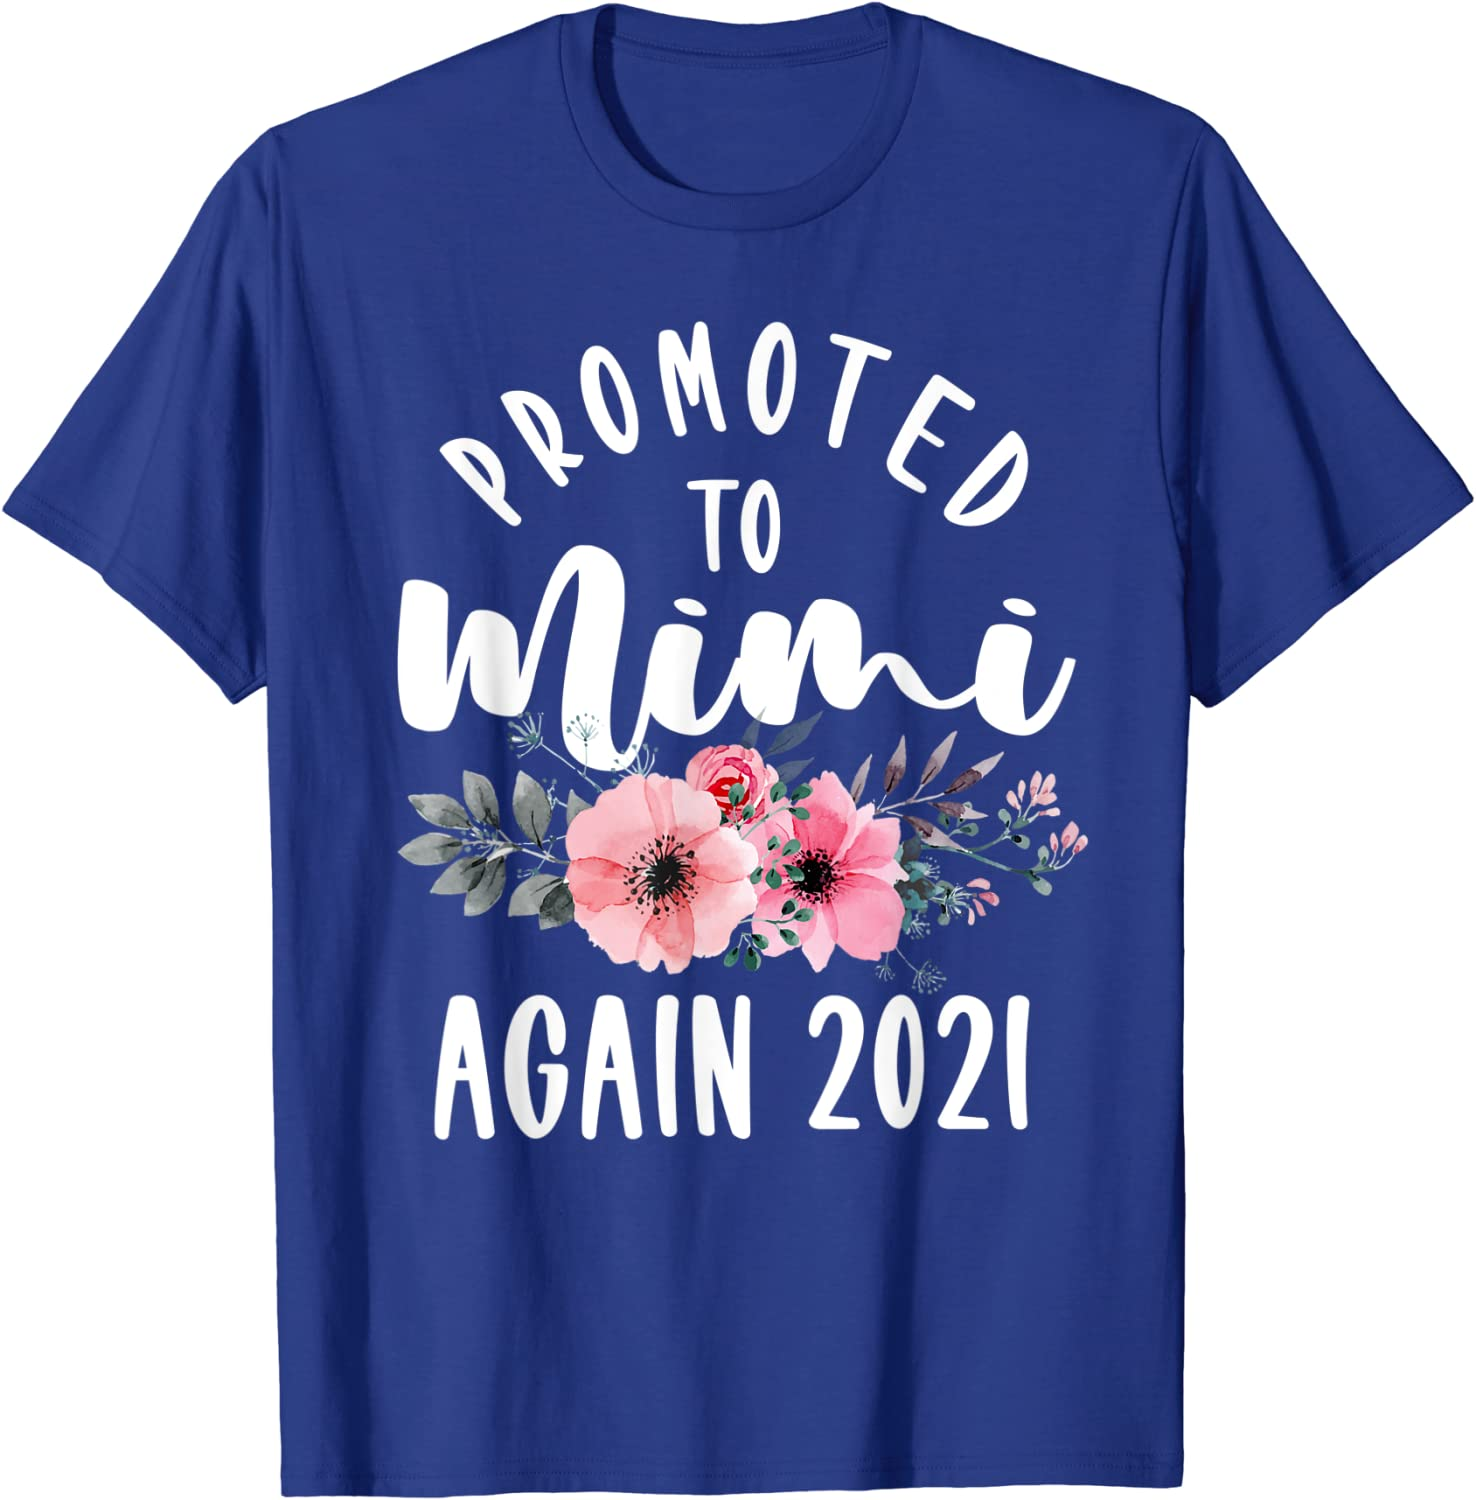 Mimi Shirt Promoted To Mimi T-shirt Pregnancy Announcement Gift Gift For Mimi Mimi T-shirt Mother/'s Day Gift